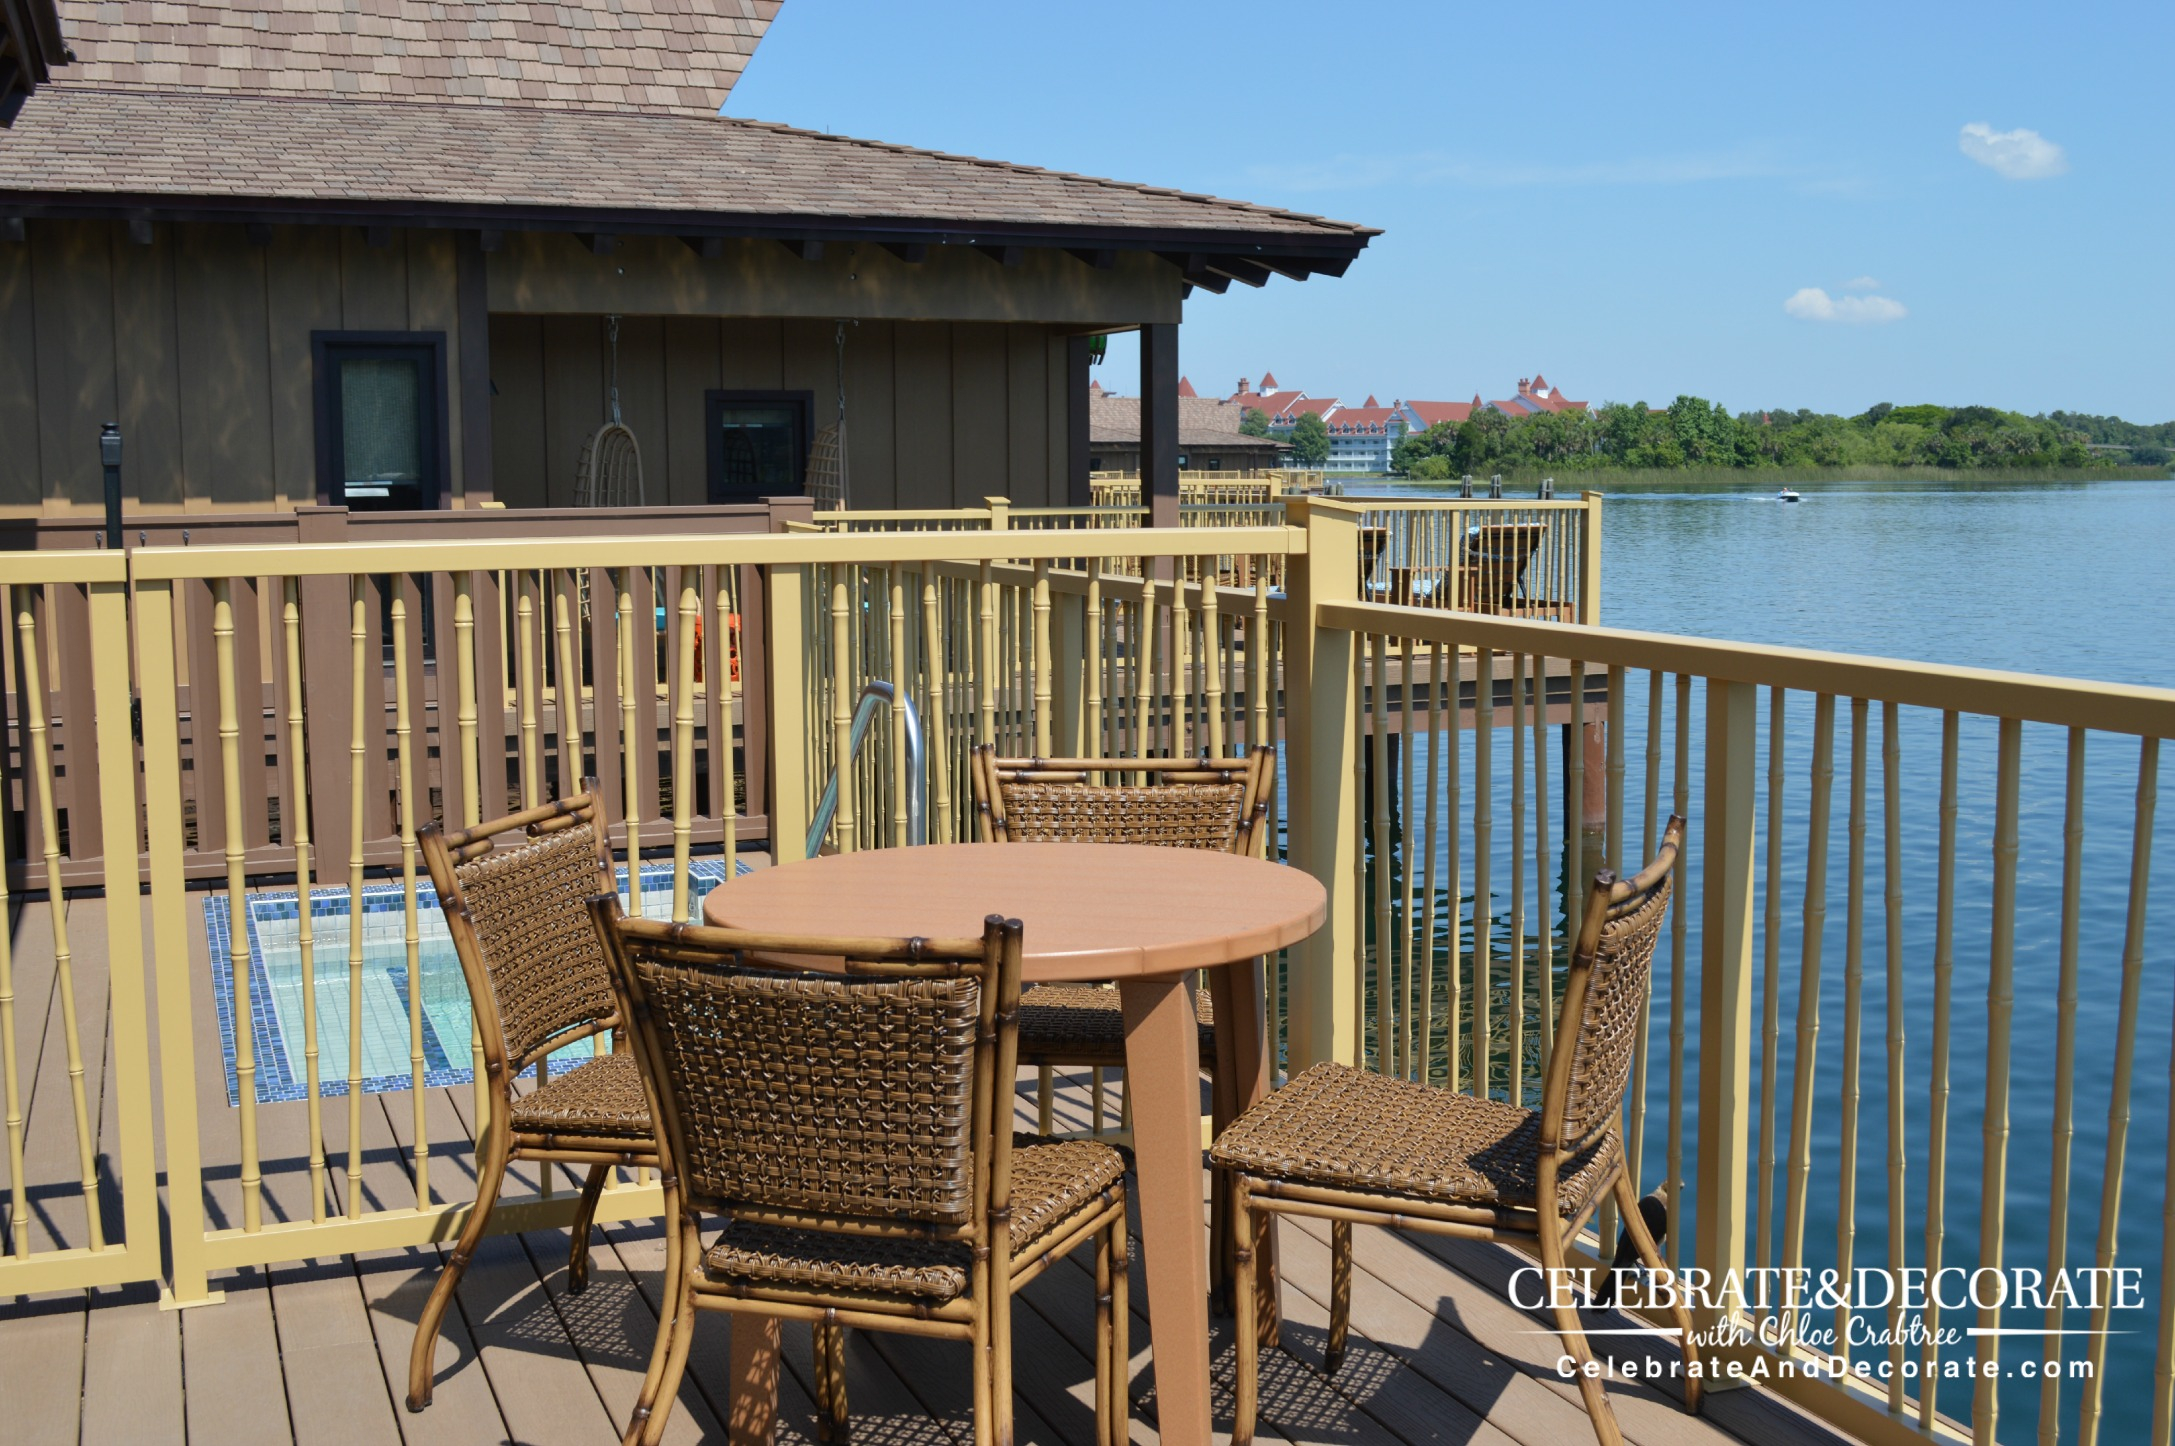 Modular Disney's Polynesian Resort Bungalow - Celebrate & Decorate within Beautiful Disney Polynesian Resort Bungalows